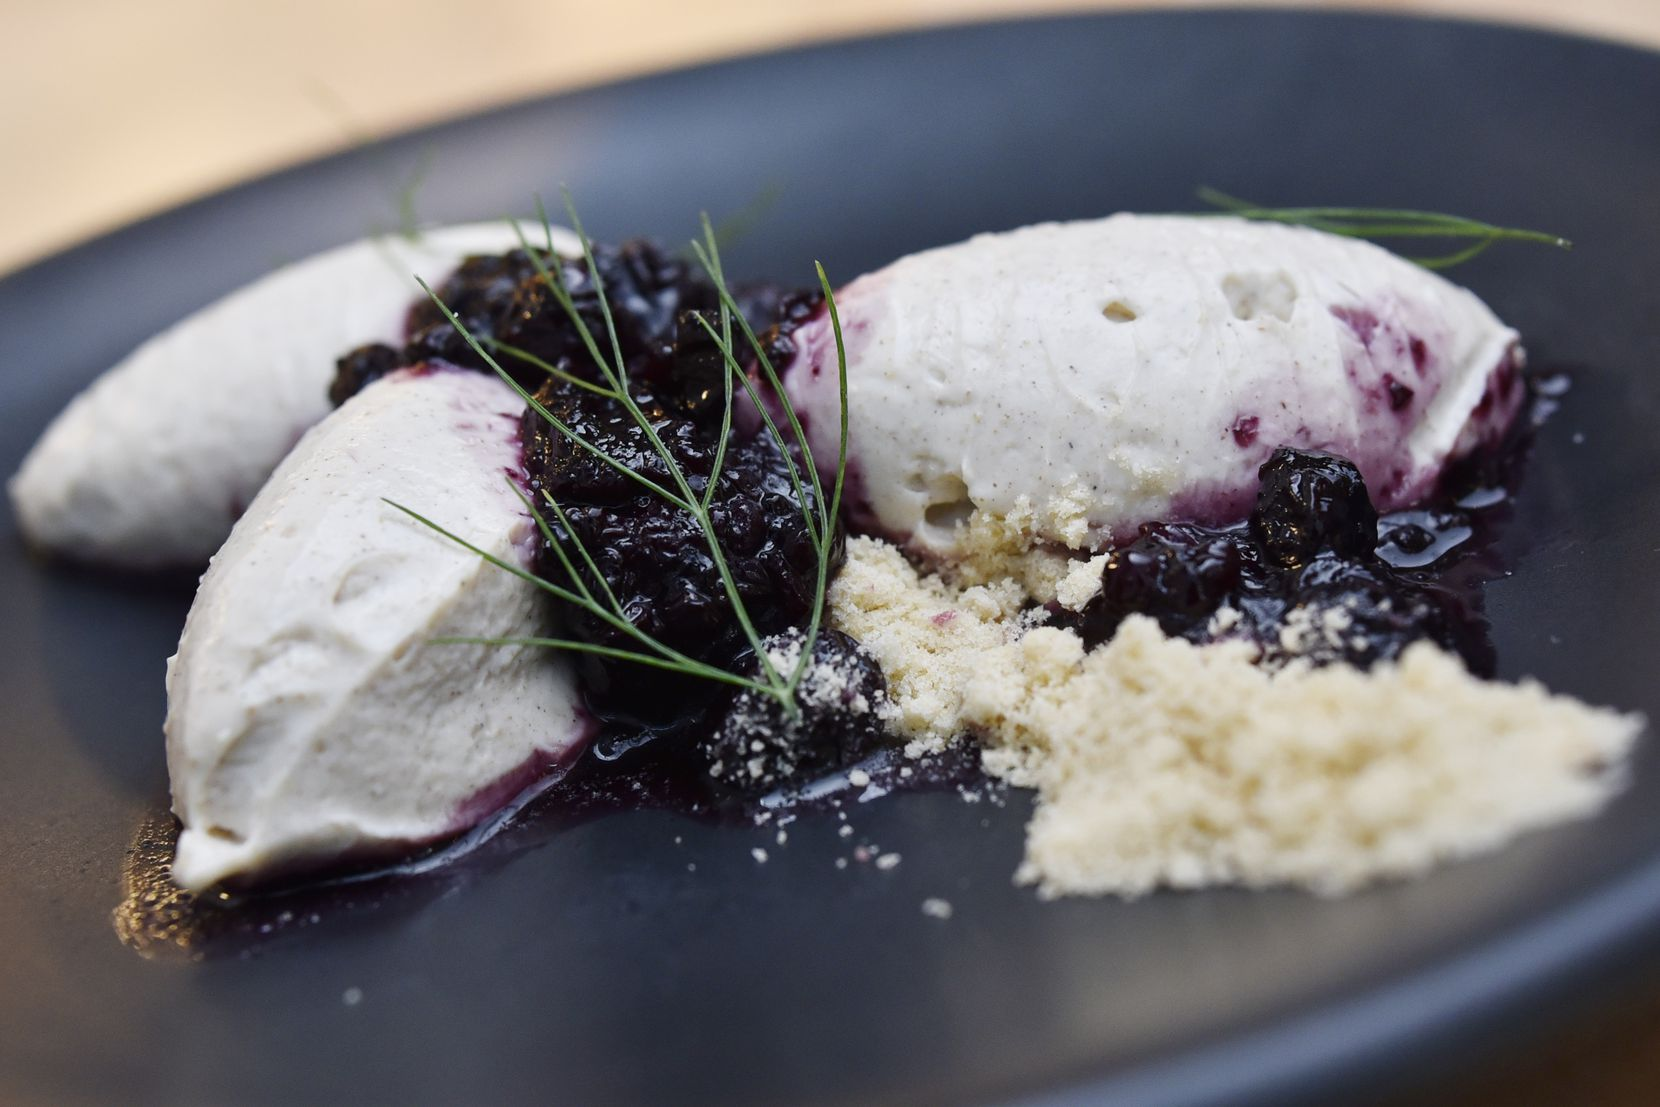 Pressed greek yogurt with berry compote and brown butter crumble